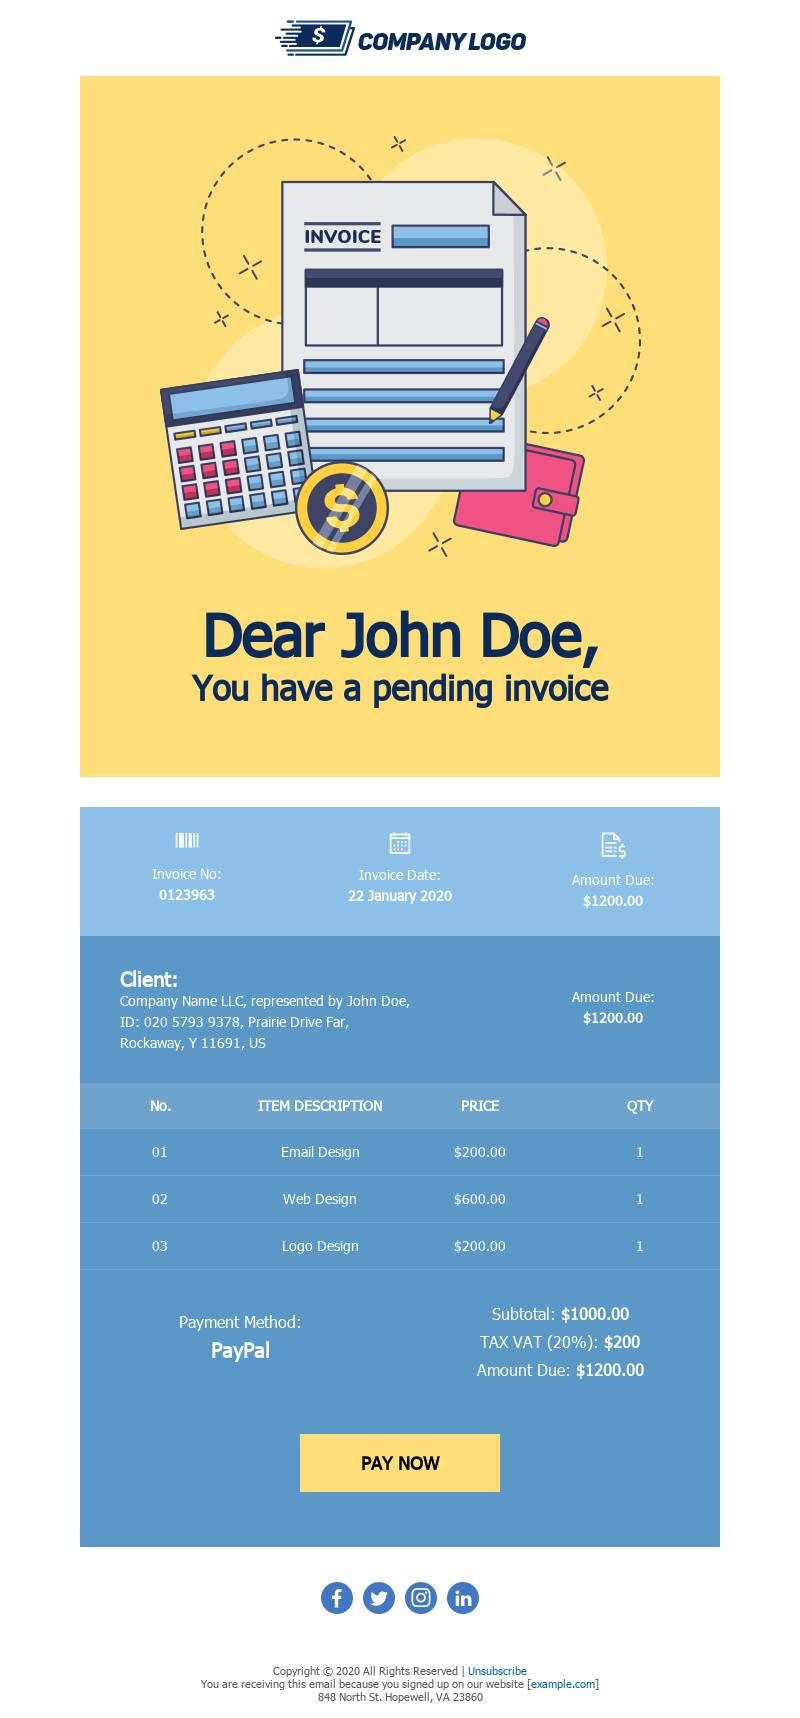 Template Bee Free Email Template Design Email Design Professional Email Templates